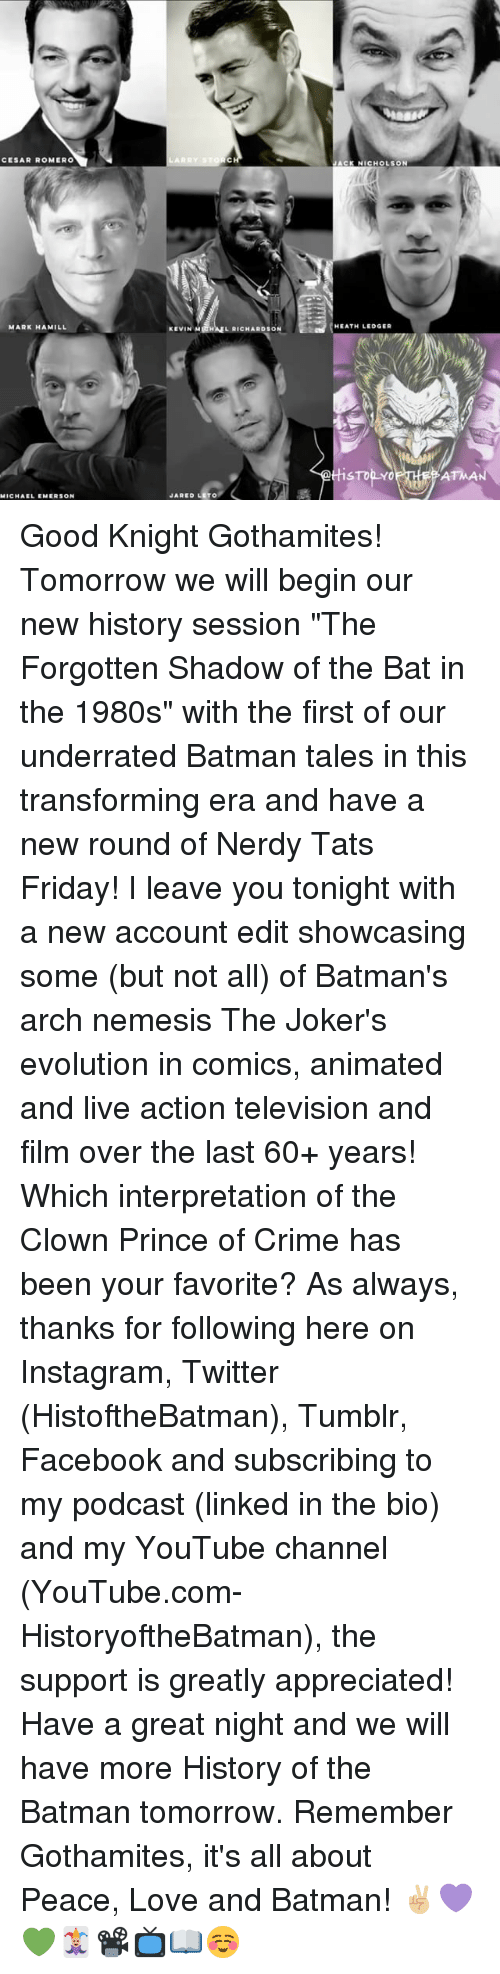 "Batman, Crime, and Facebook: CESAR ROMERO  MARK HAMILL  MICHAEL EMERSON  LARRY STO  KEVIN M  L RICHARDSON  JARED LETO  ACK NICHOLSON  HEATH LEDGER  STop Y Good Knight Gothamites! Tomorrow we will begin our new history session ""The Forgotten Shadow of the Bat in the 1980s"" with the first of our underrated Batman tales in this transforming era and have a new round of Nerdy Tats Friday! I leave you tonight with a new account edit showcasing some (but not all) of Batman's arch nemesis The Joker's evolution in comics, animated and live action television and film over the last 60+ years! Which interpretation of the Clown Prince of Crime has been your favorite? As always, thanks for following here on Instagram, Twitter (HistoftheBatman), Tumblr, Facebook and subscribing to my podcast (linked in the bio) and my YouTube channel (YouTube.com-HistoryoftheBatman), the support is greatly appreciated! Have a great night and we will have more History of the Batman tomorrow. Remember Gothamites, it's all about Peace, Love and Batman! ✌🏼💜💚🃏📽📺📖☺"